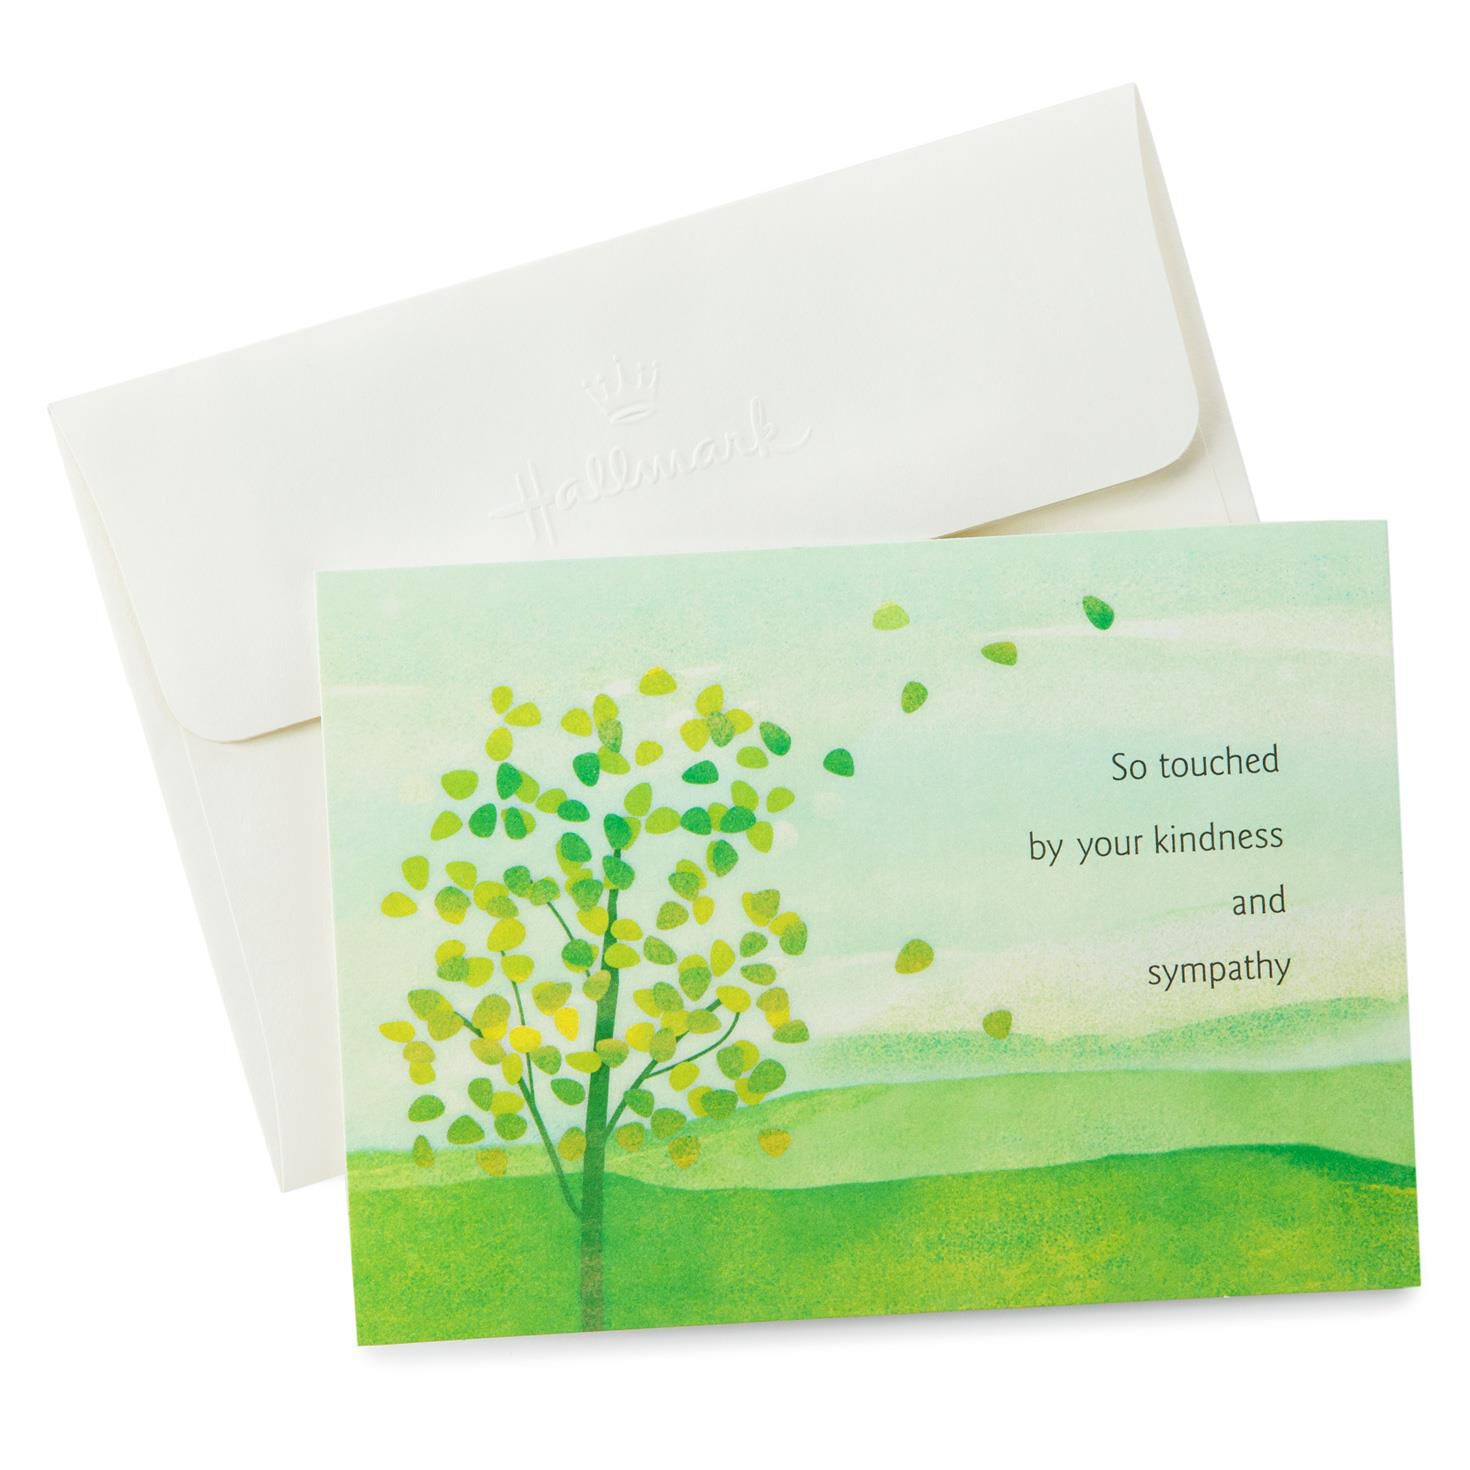 Sympathy thank you notes pack of 10 note cards hallmark altavistaventures Gallery